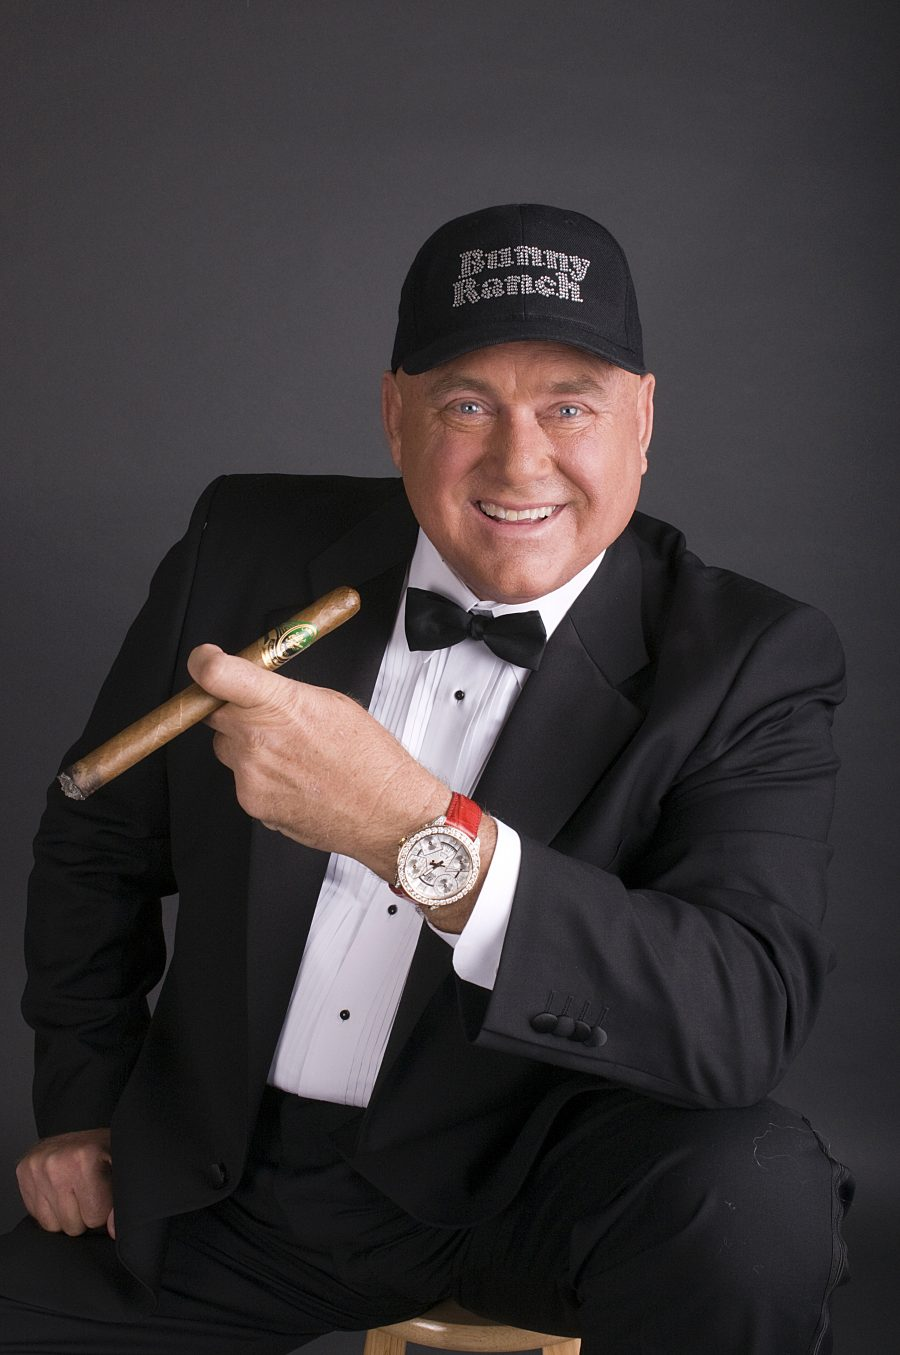 Bunny Ranch owner and Nevada Assembly candidate Dennis Hof was accused of raping a woman who worked at one of his brothels in 2005 a newly released police